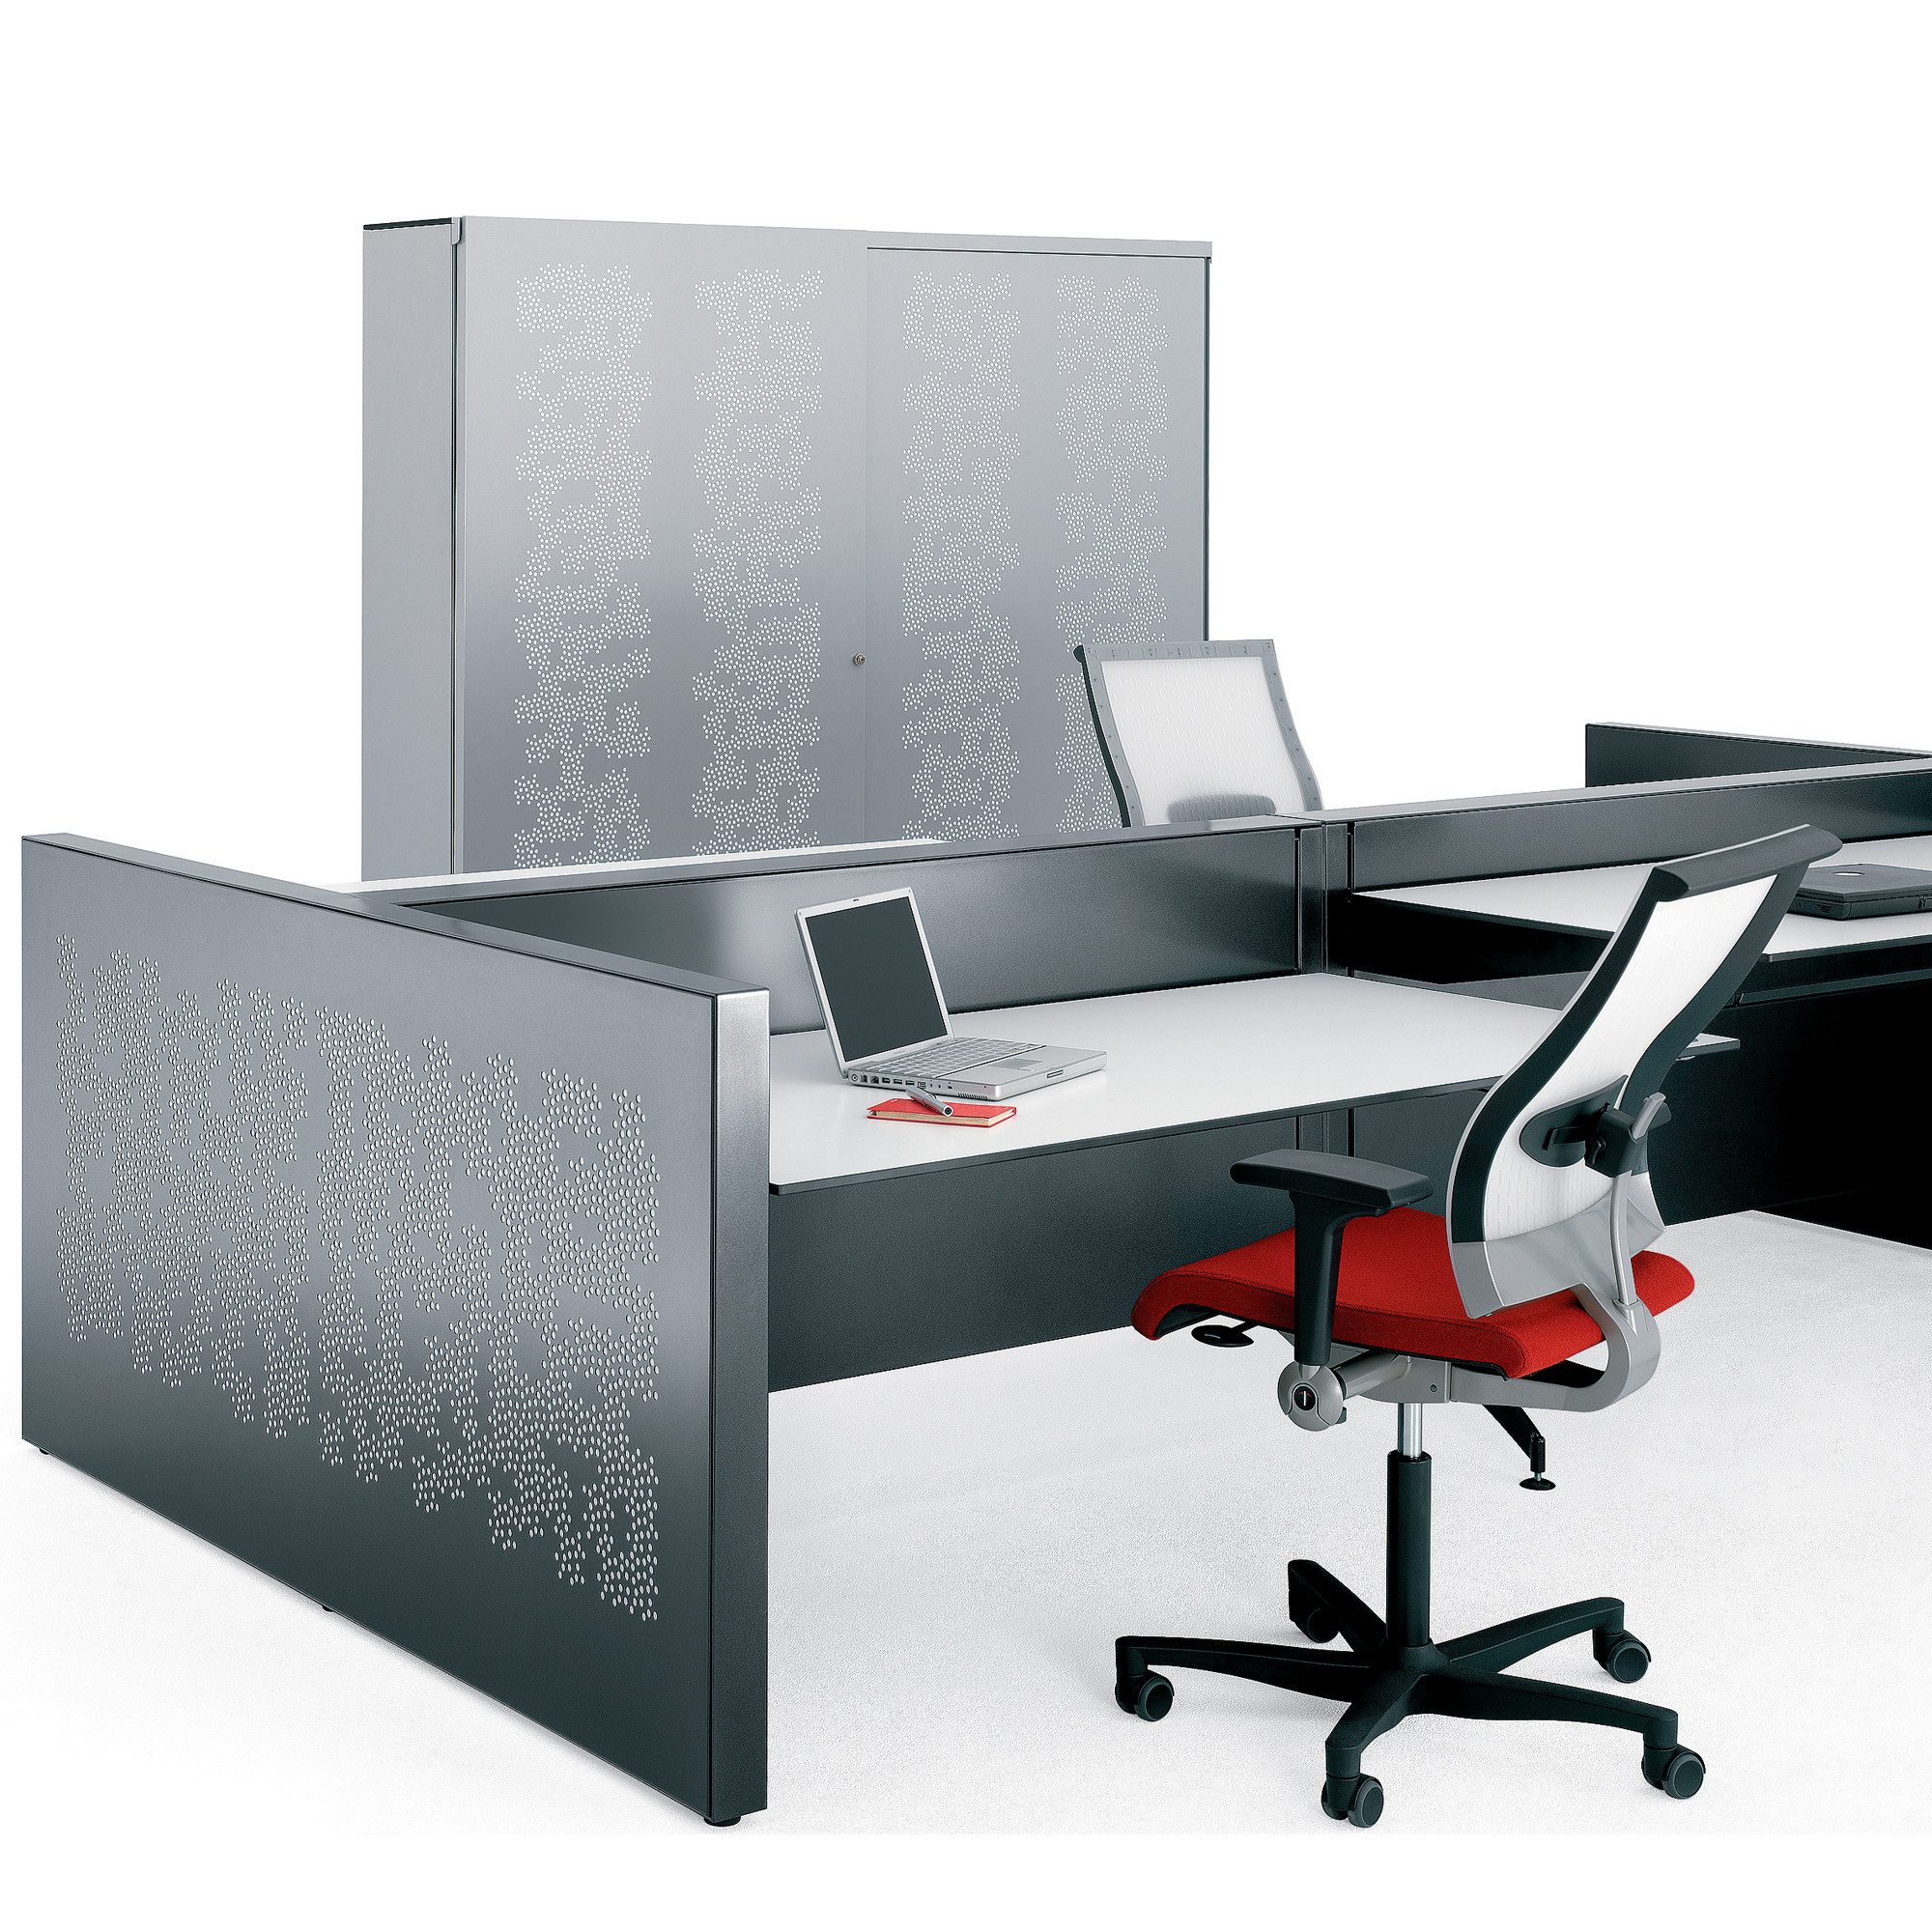 Ahrend 750 Office Bench System